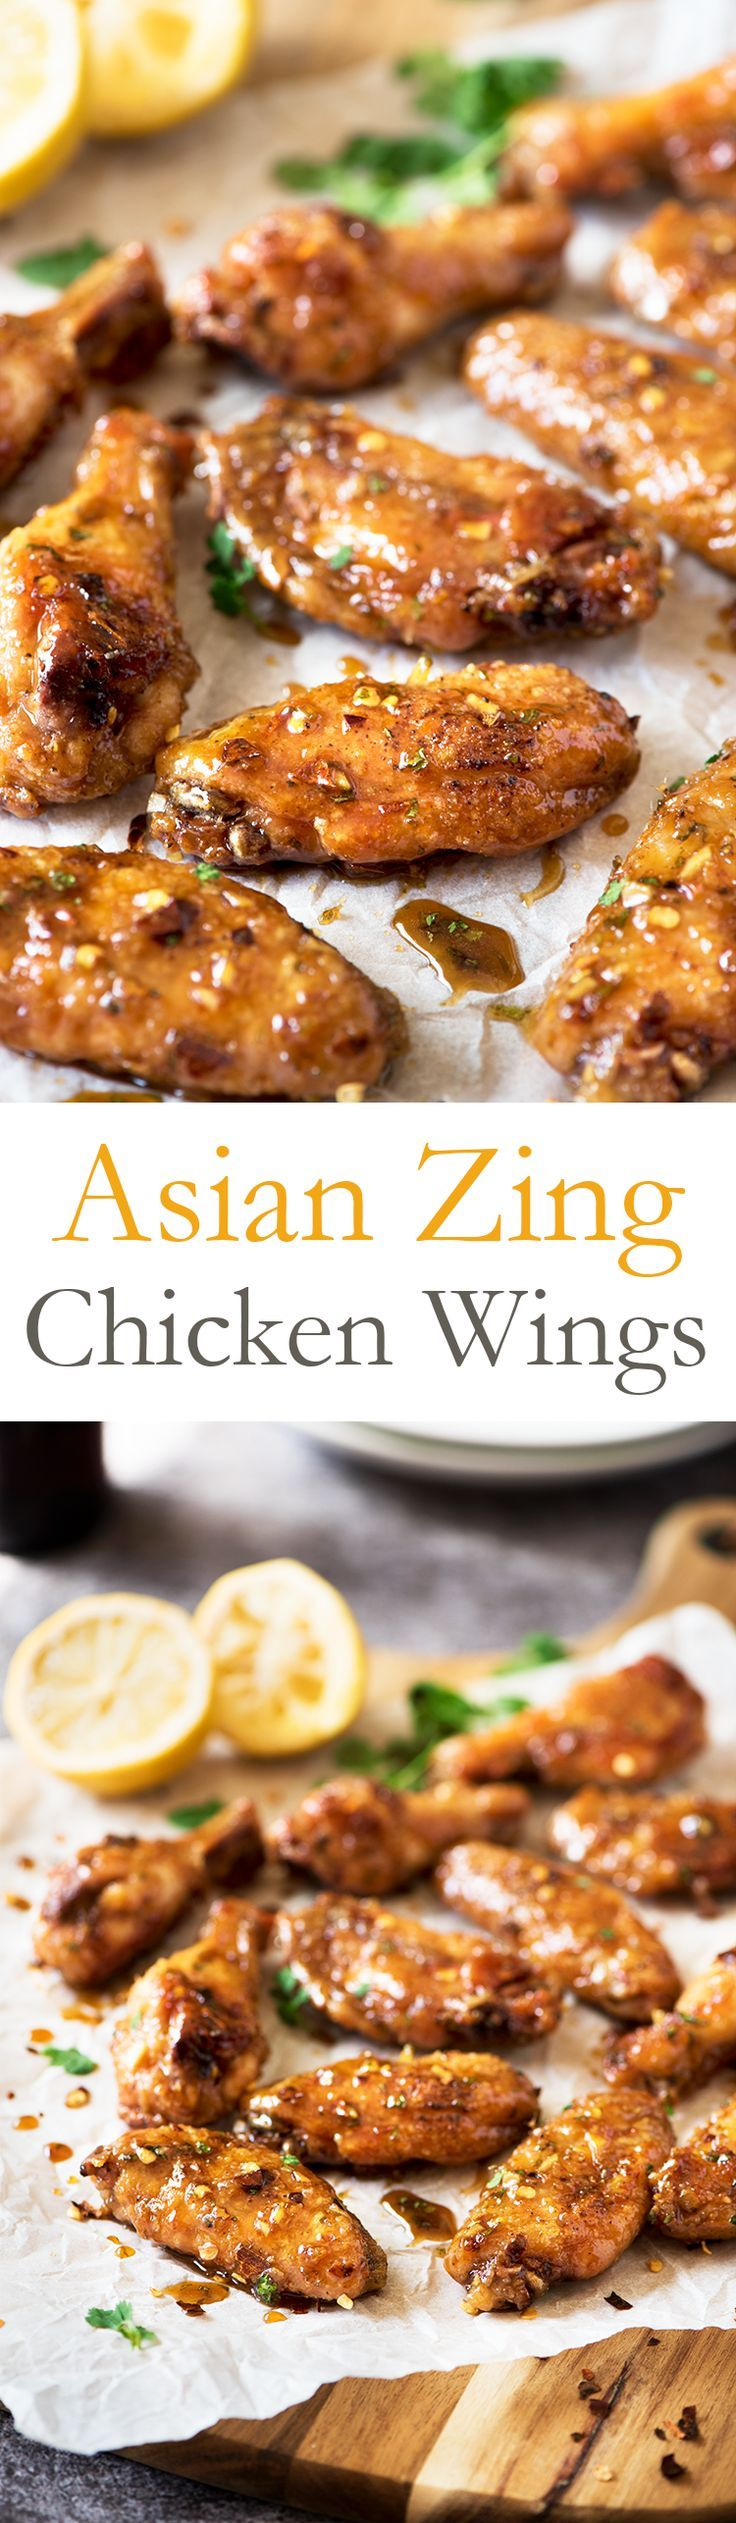 Crispy wings coated in a sticky, sweet, spicy & tangy sauce. Full of tropical Asian fusion flavor with each bite. A sure crowd-pleaser.